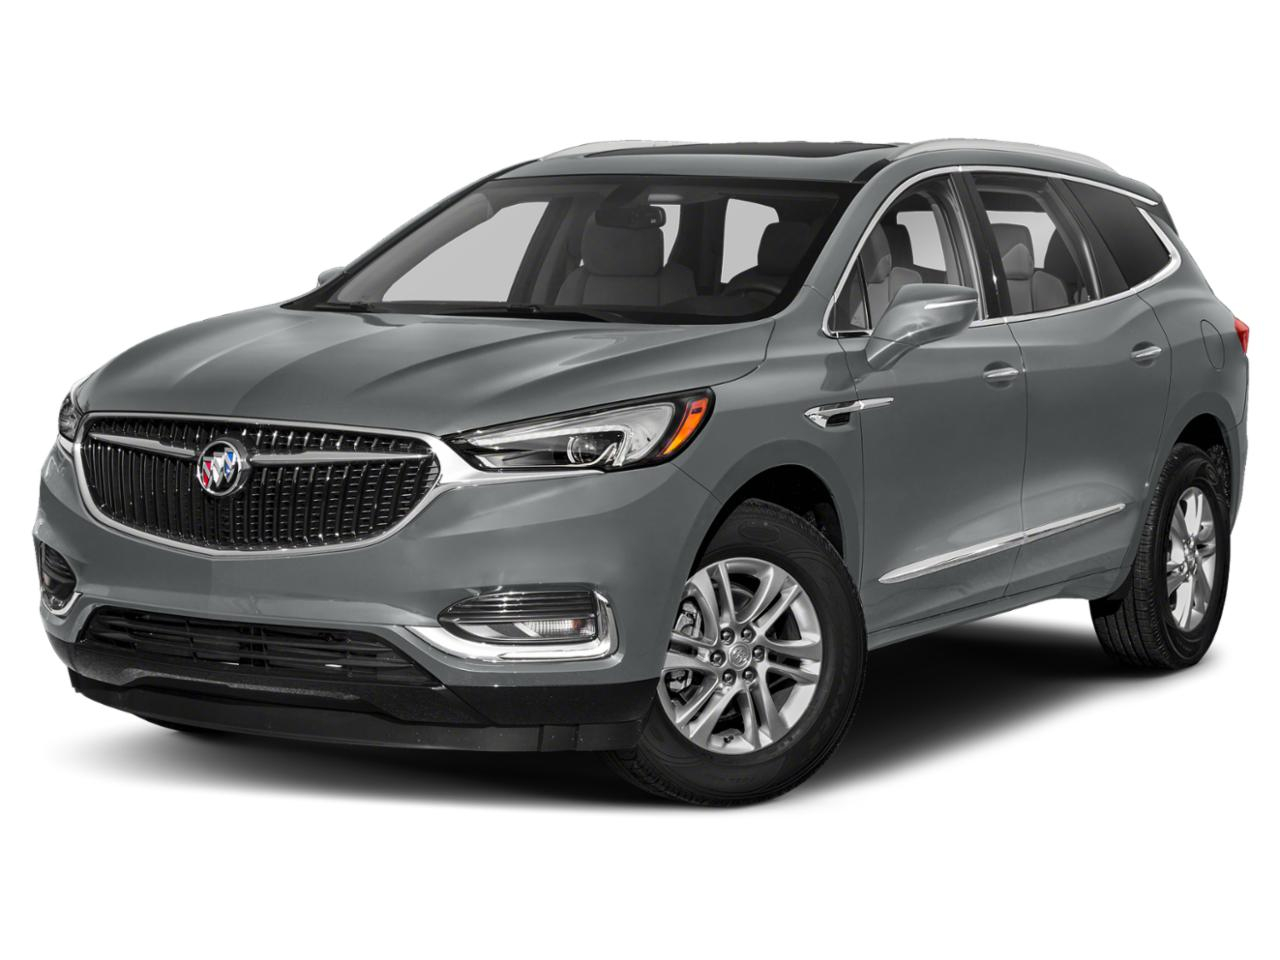 2020 Buick Enclave Avenir Awd In Norman, Ok | Stk# |Ferguson 2021 Buick Enclave Oil Capacity, Owner's Manual, Problems